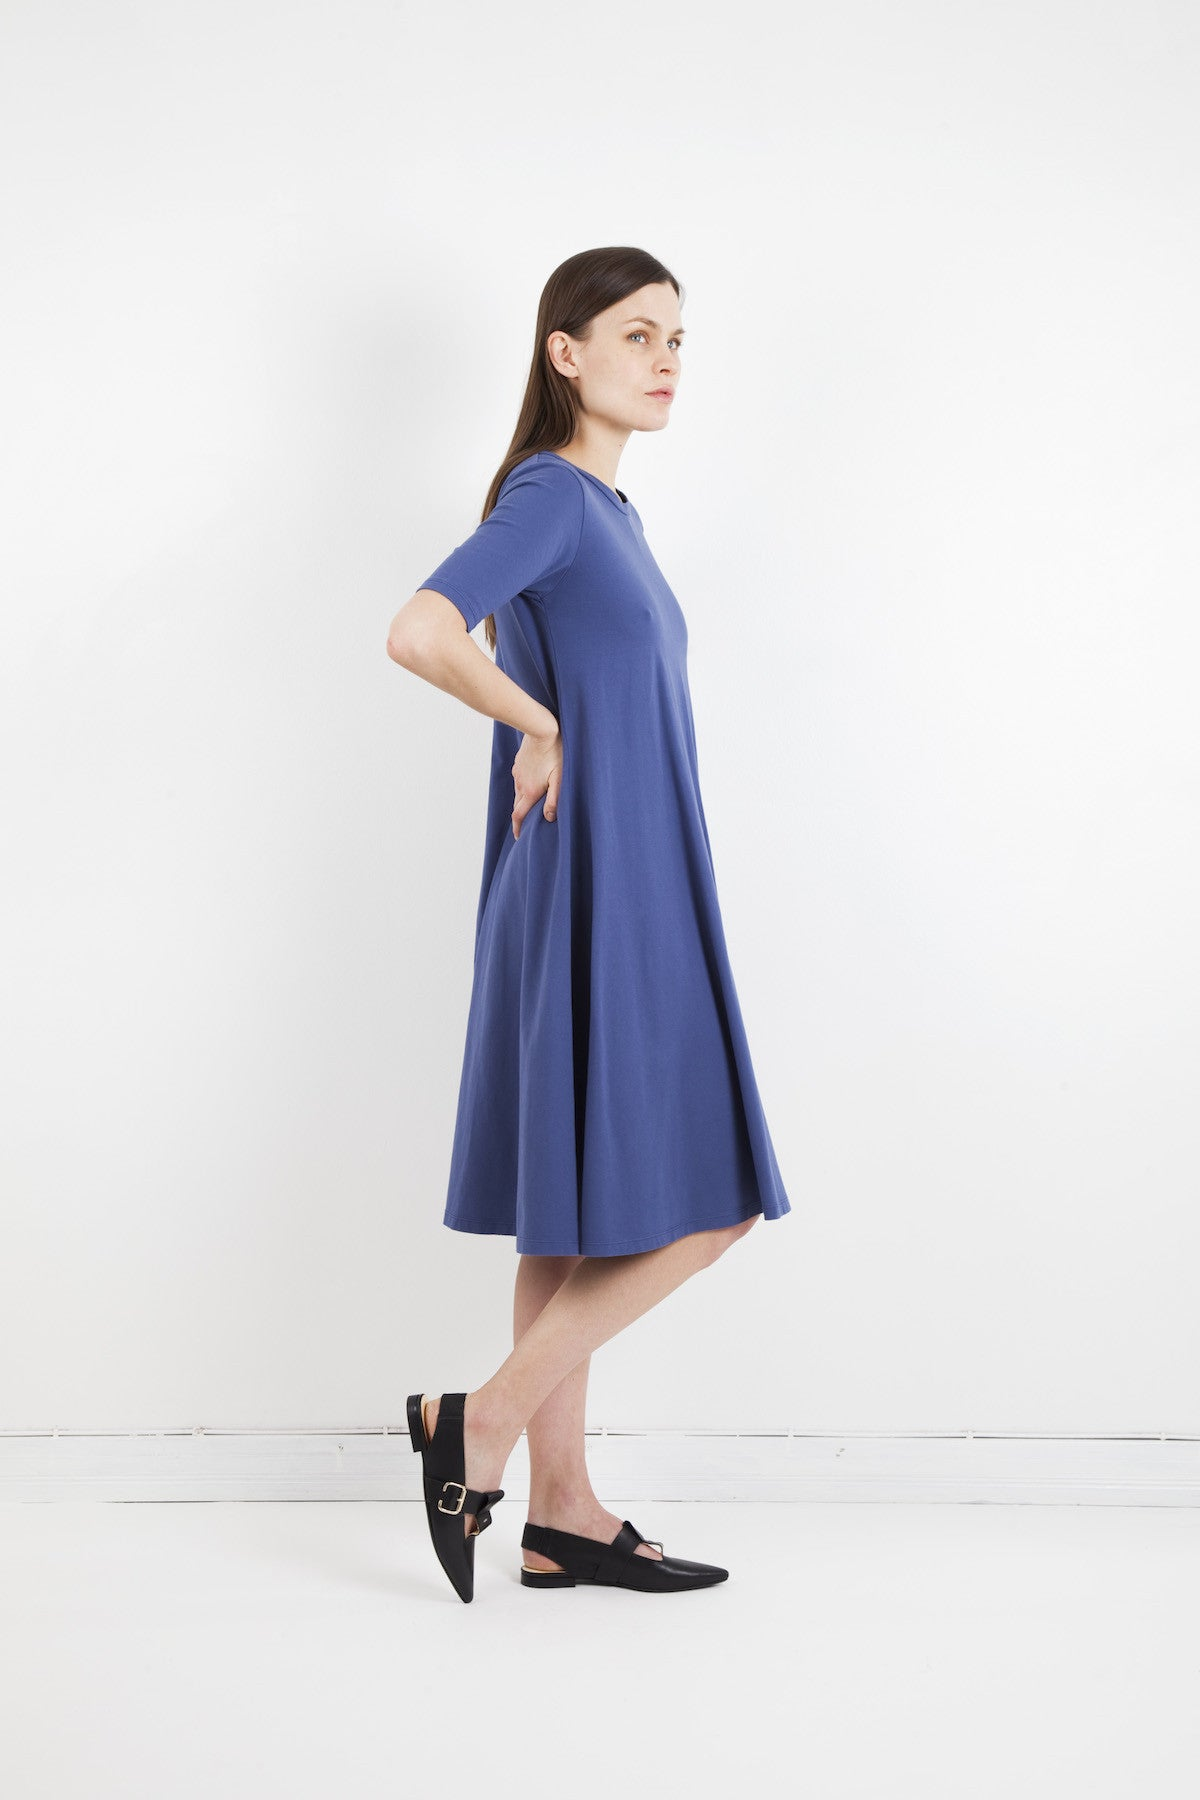 For Good: Blue Dress, size S